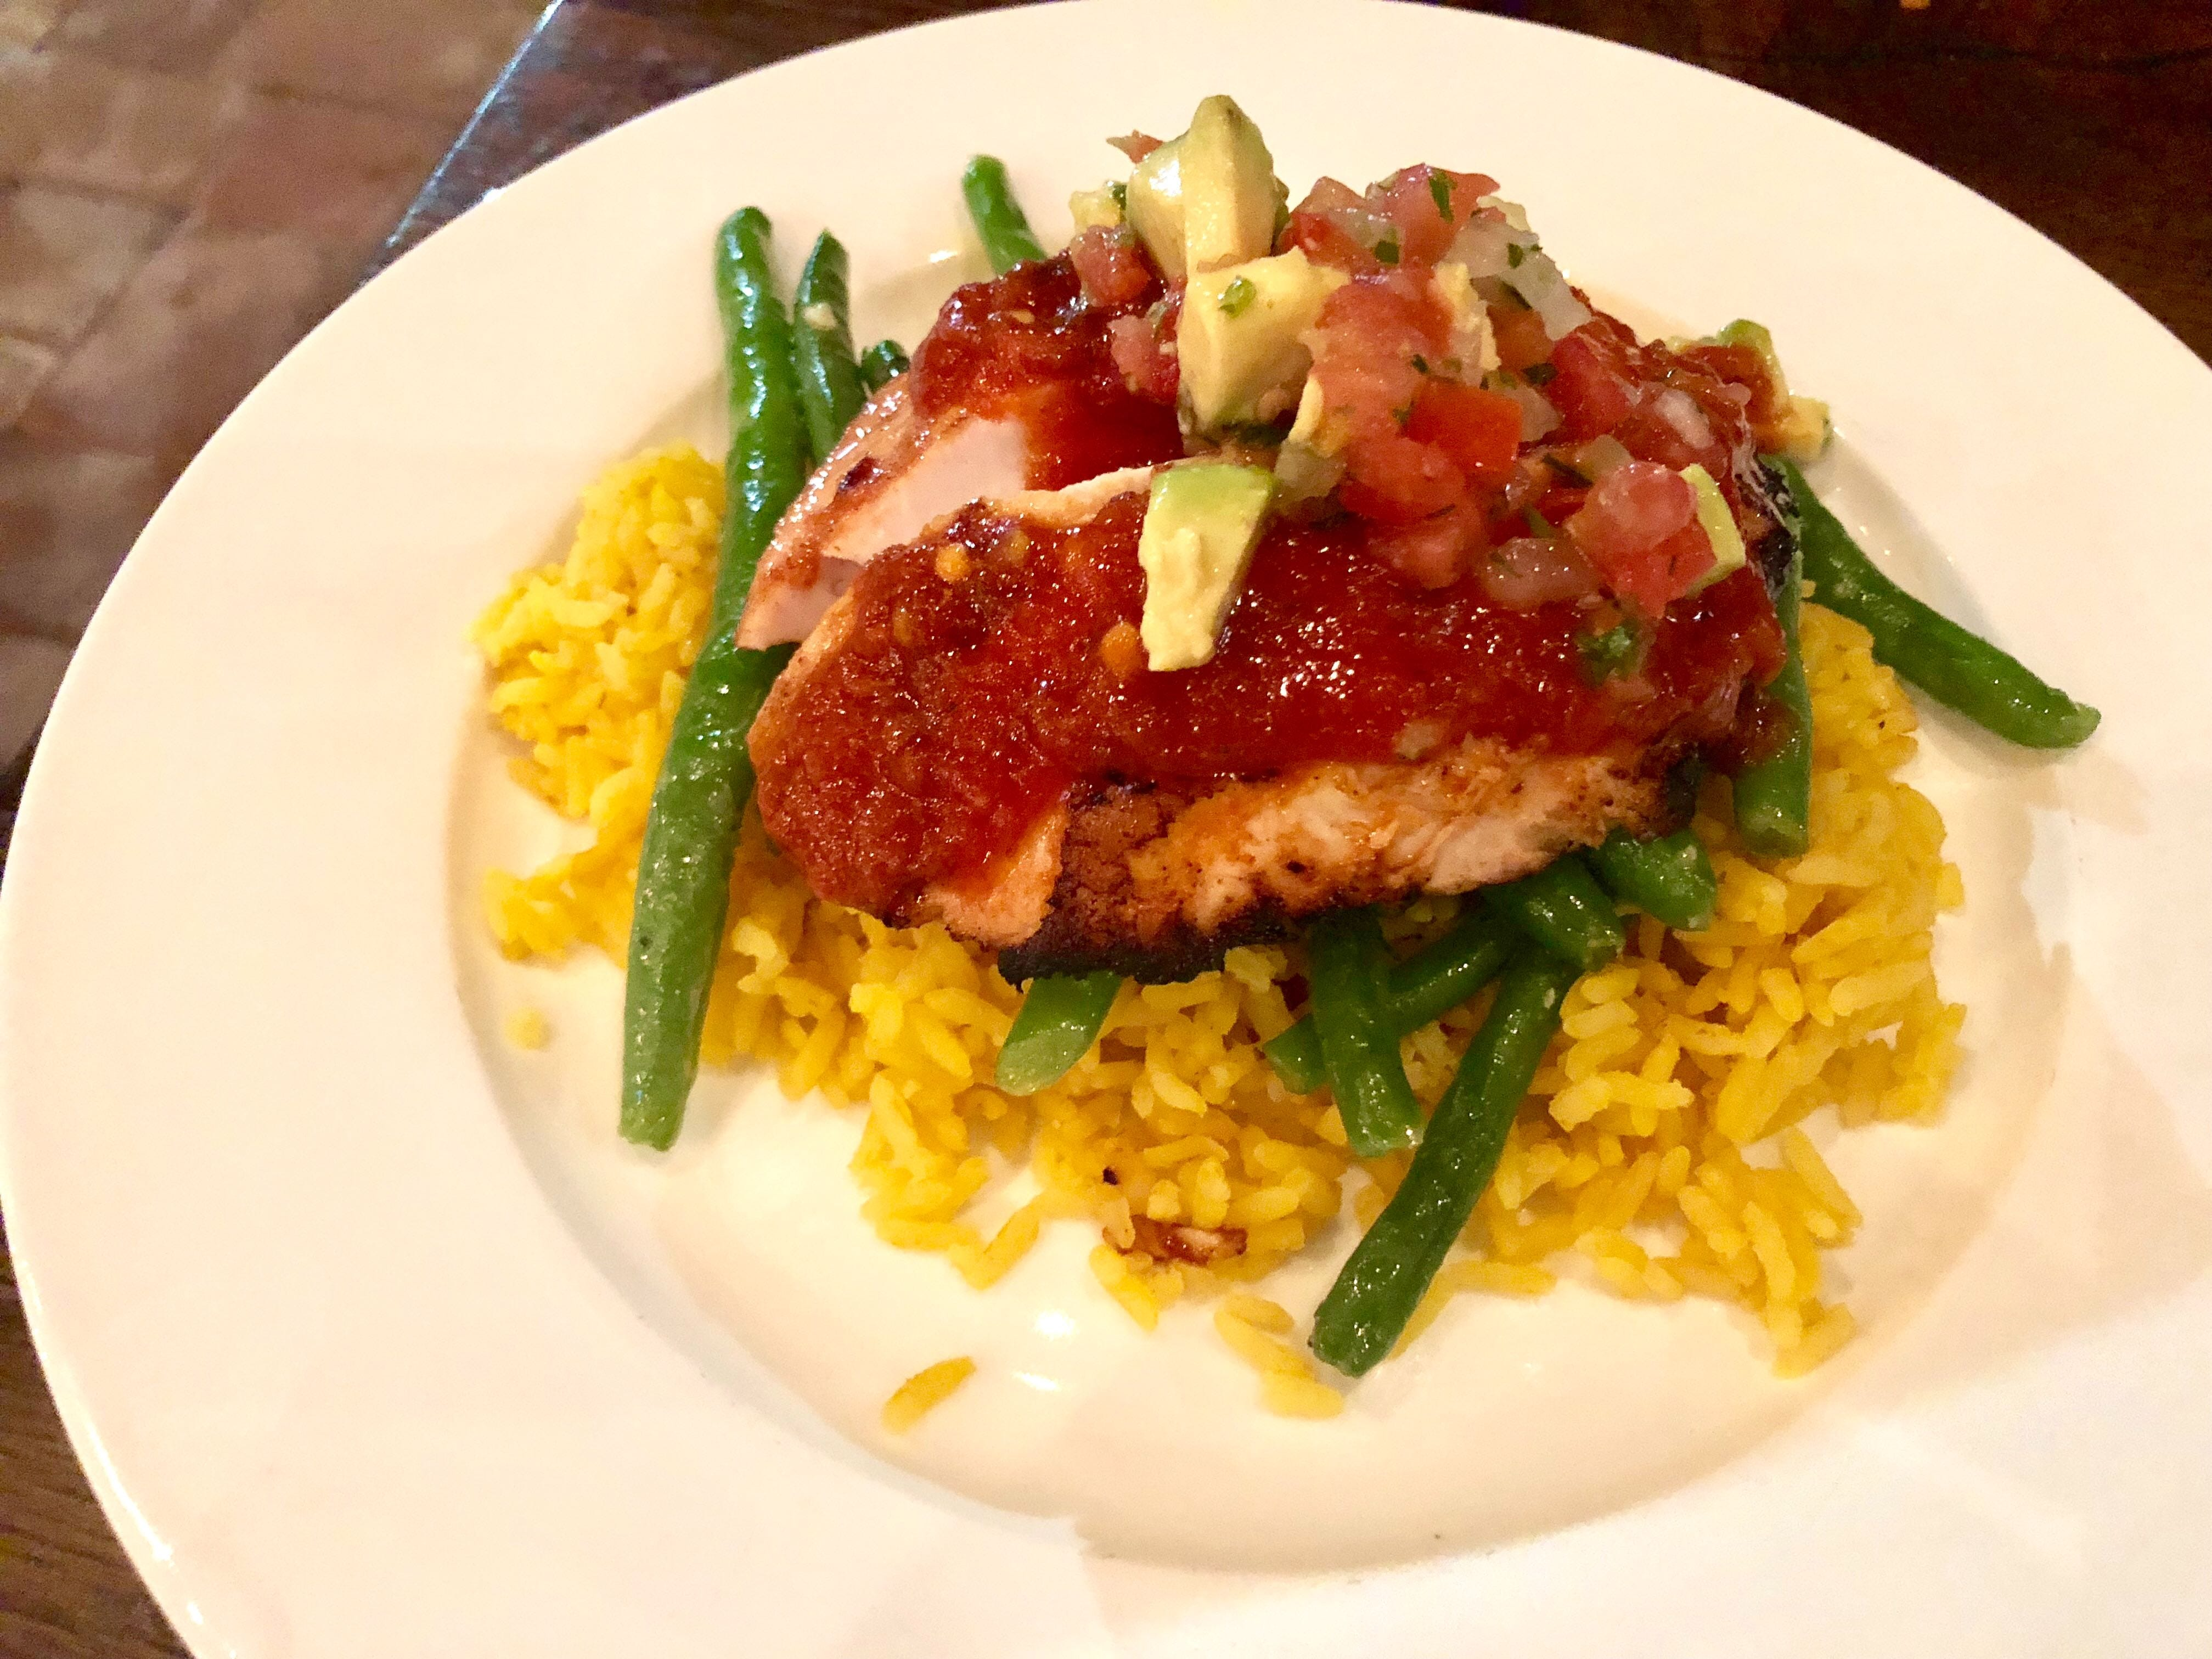 Chipotle-rubbed mahi with yellow rice and green beans at Bone Hook Brewing Co. in North Naples.